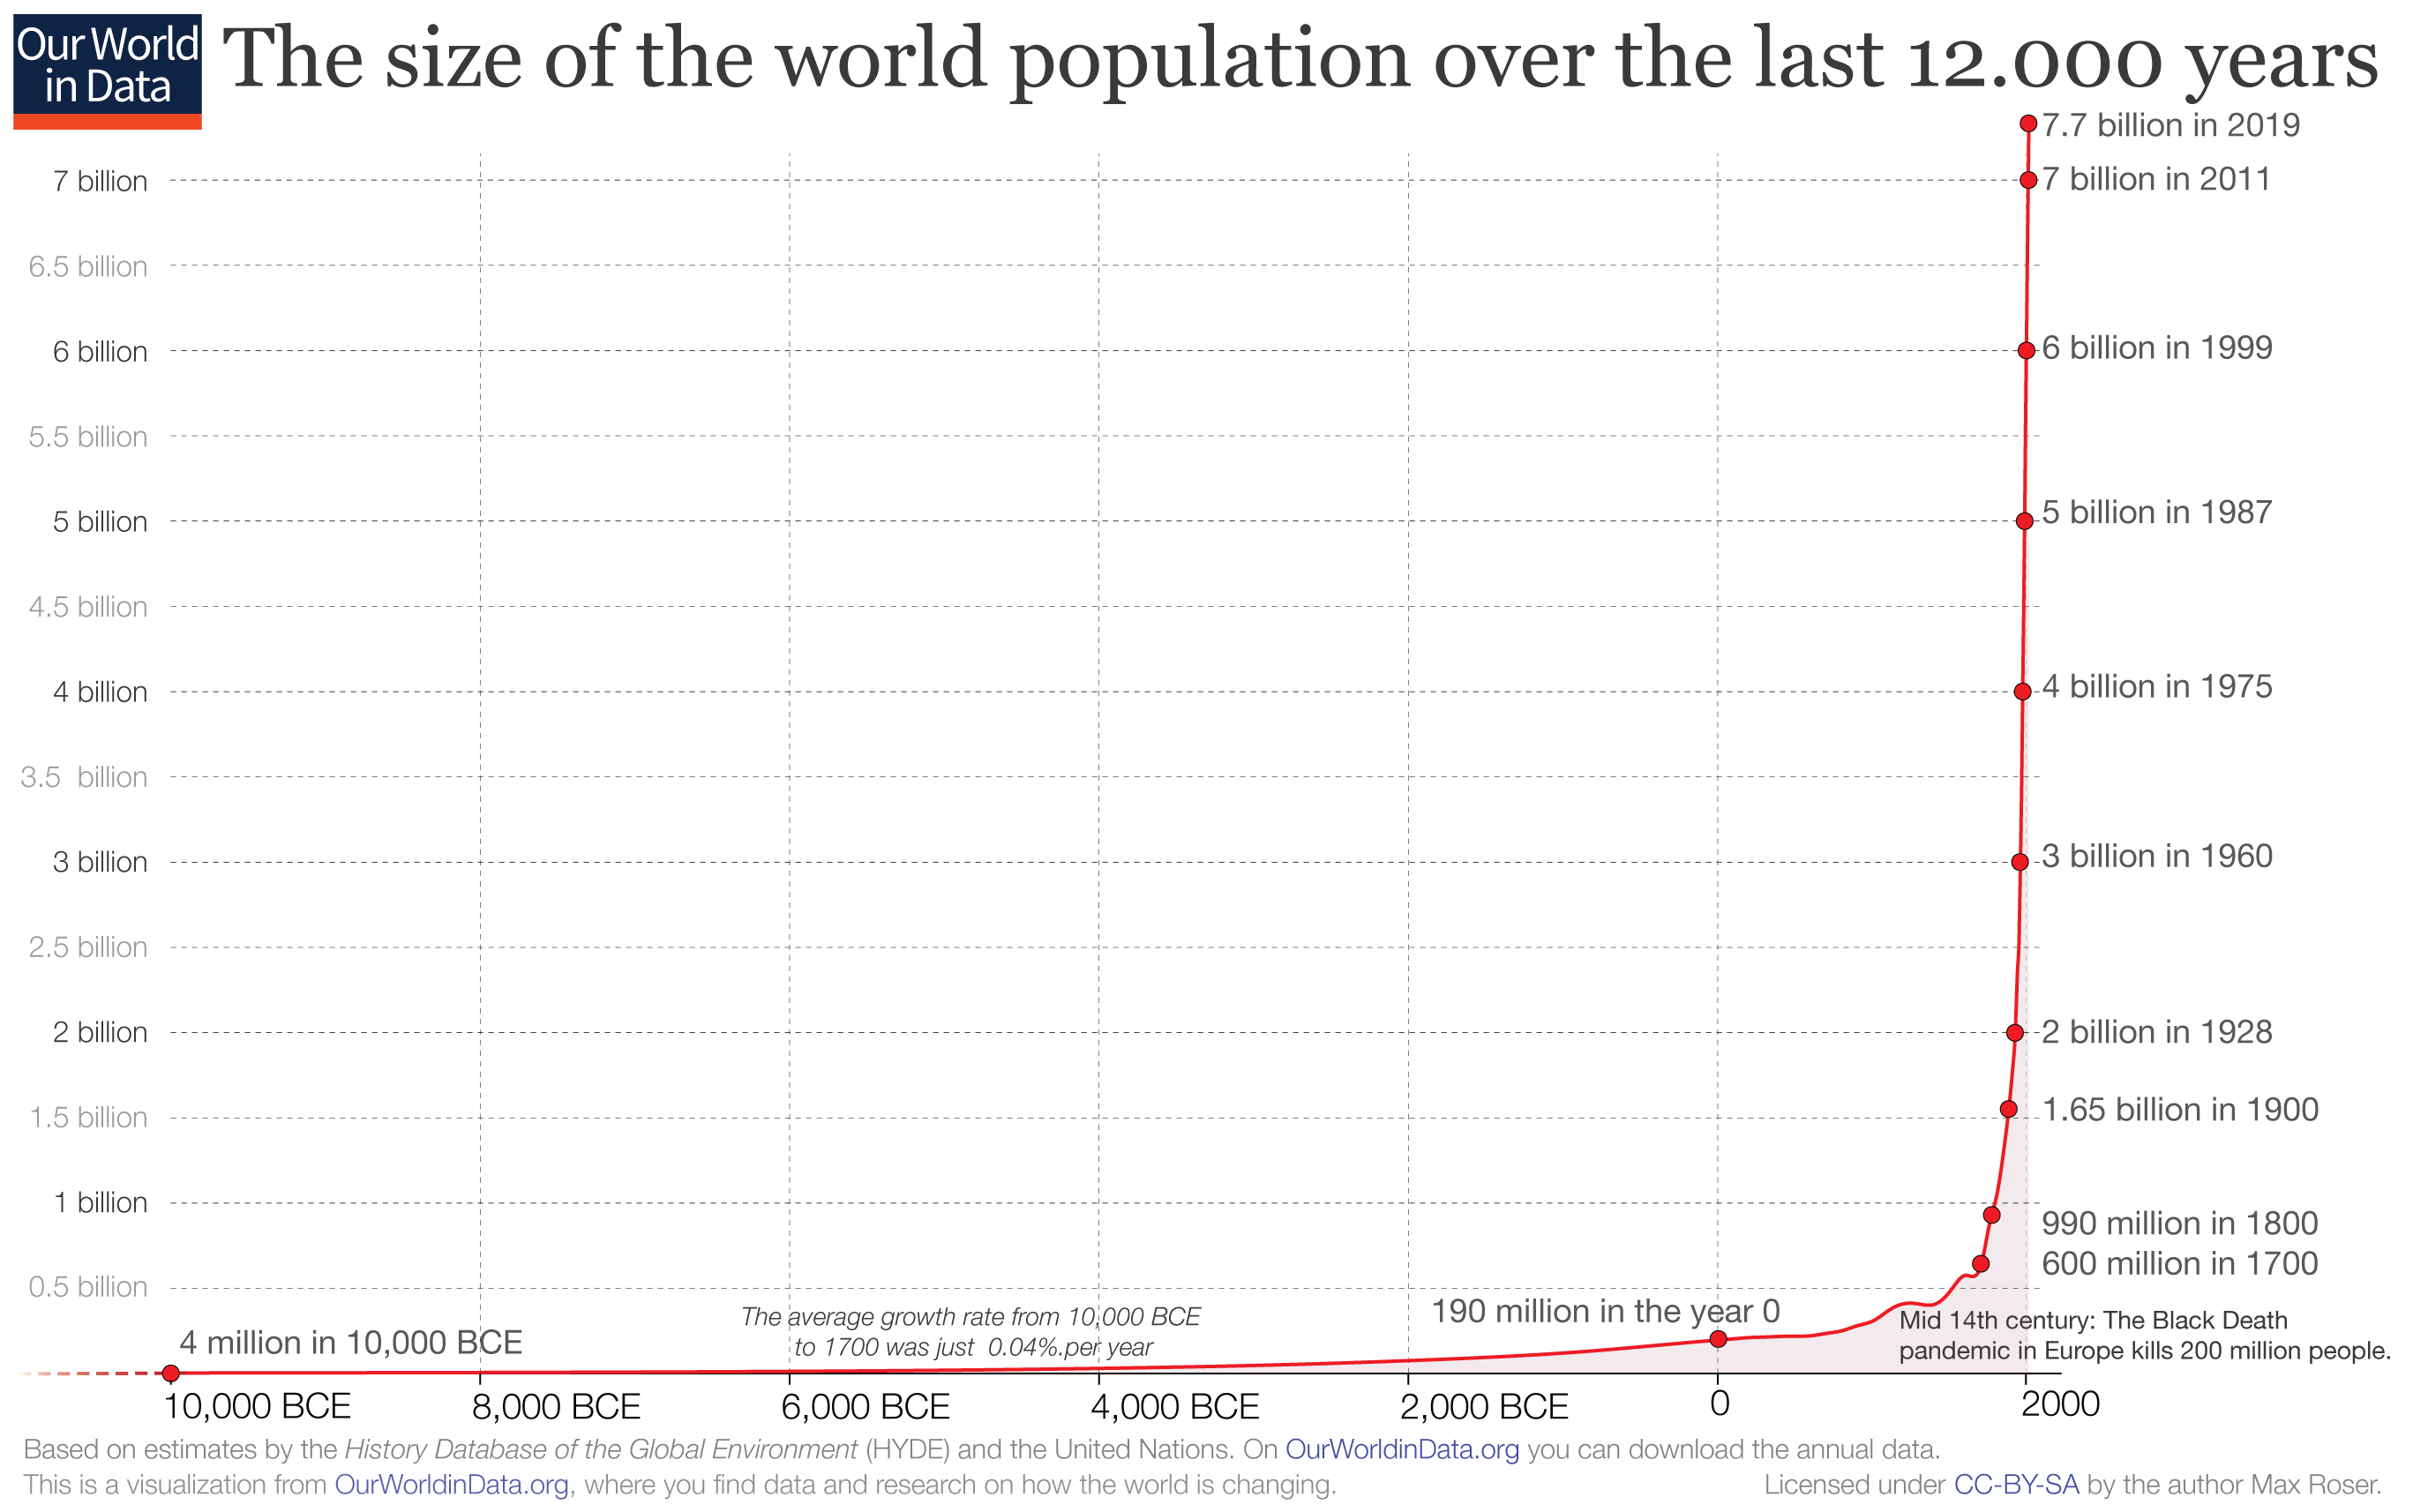 http://ourworldindata.org/uploads/2018/11/Annual-World-Population-since-10-thousand-BCE-for-OWID.png